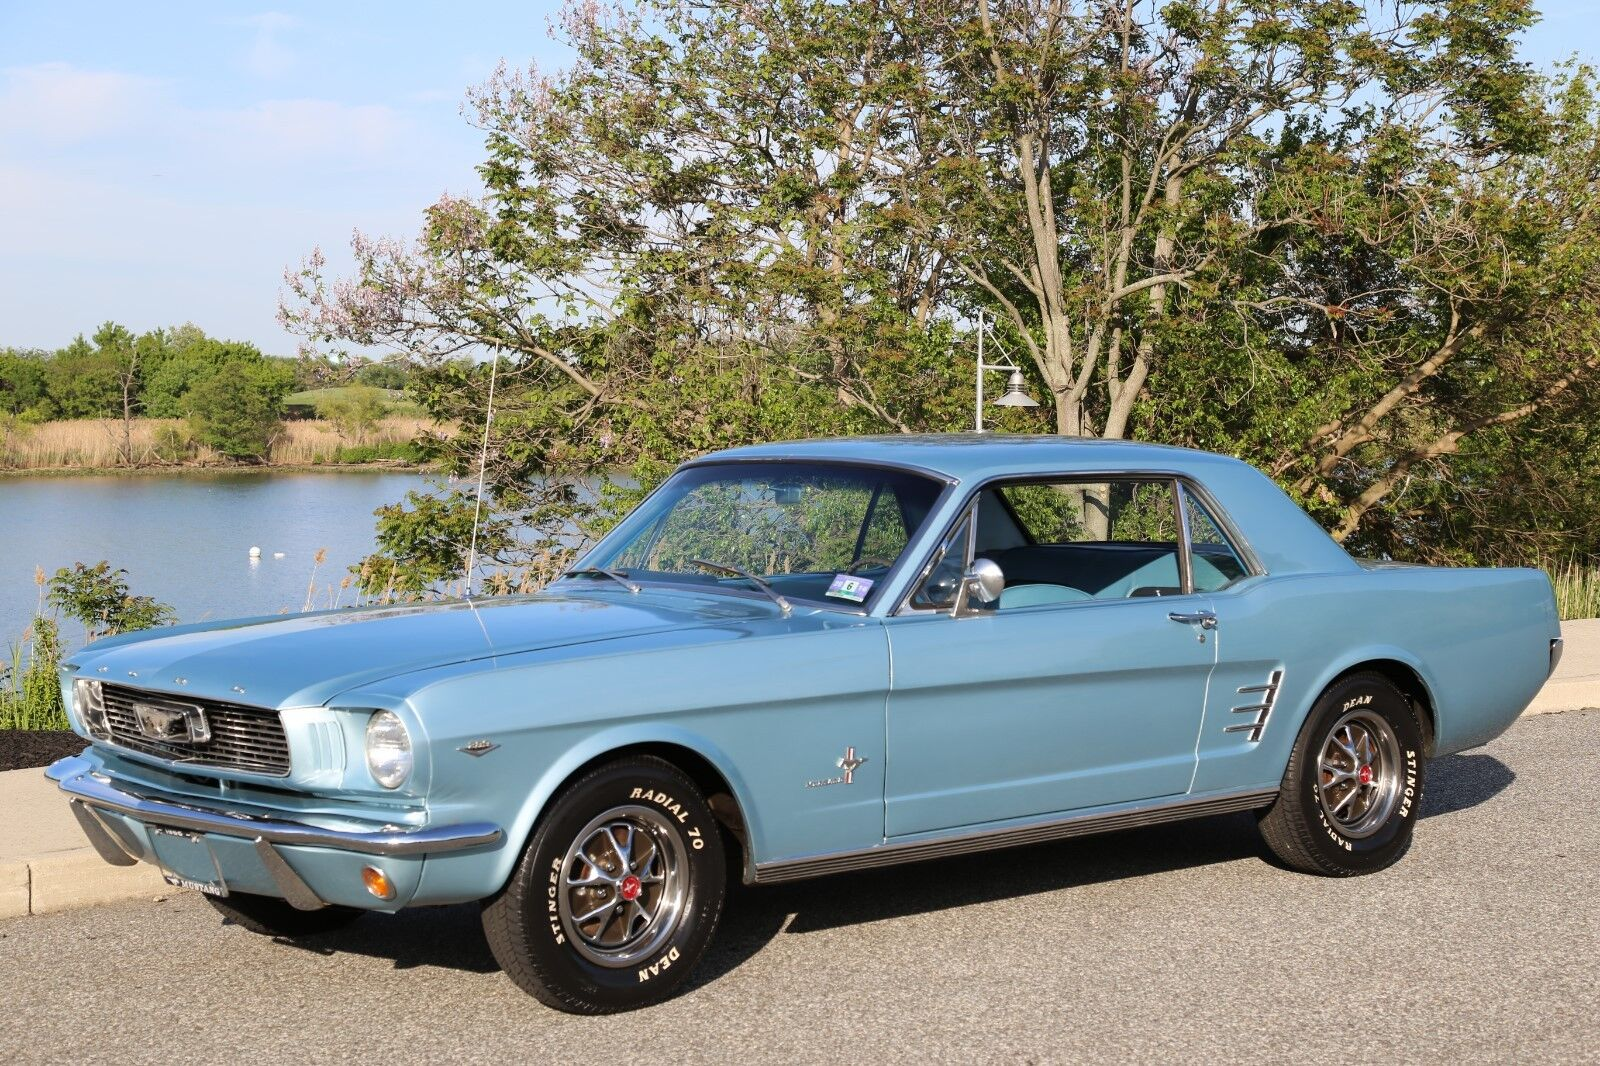 1966 FORD MUSTANG COUPE MATCHING #'s 289 V8 AUTO FRAME UP RESTORATION BUY IT NOW